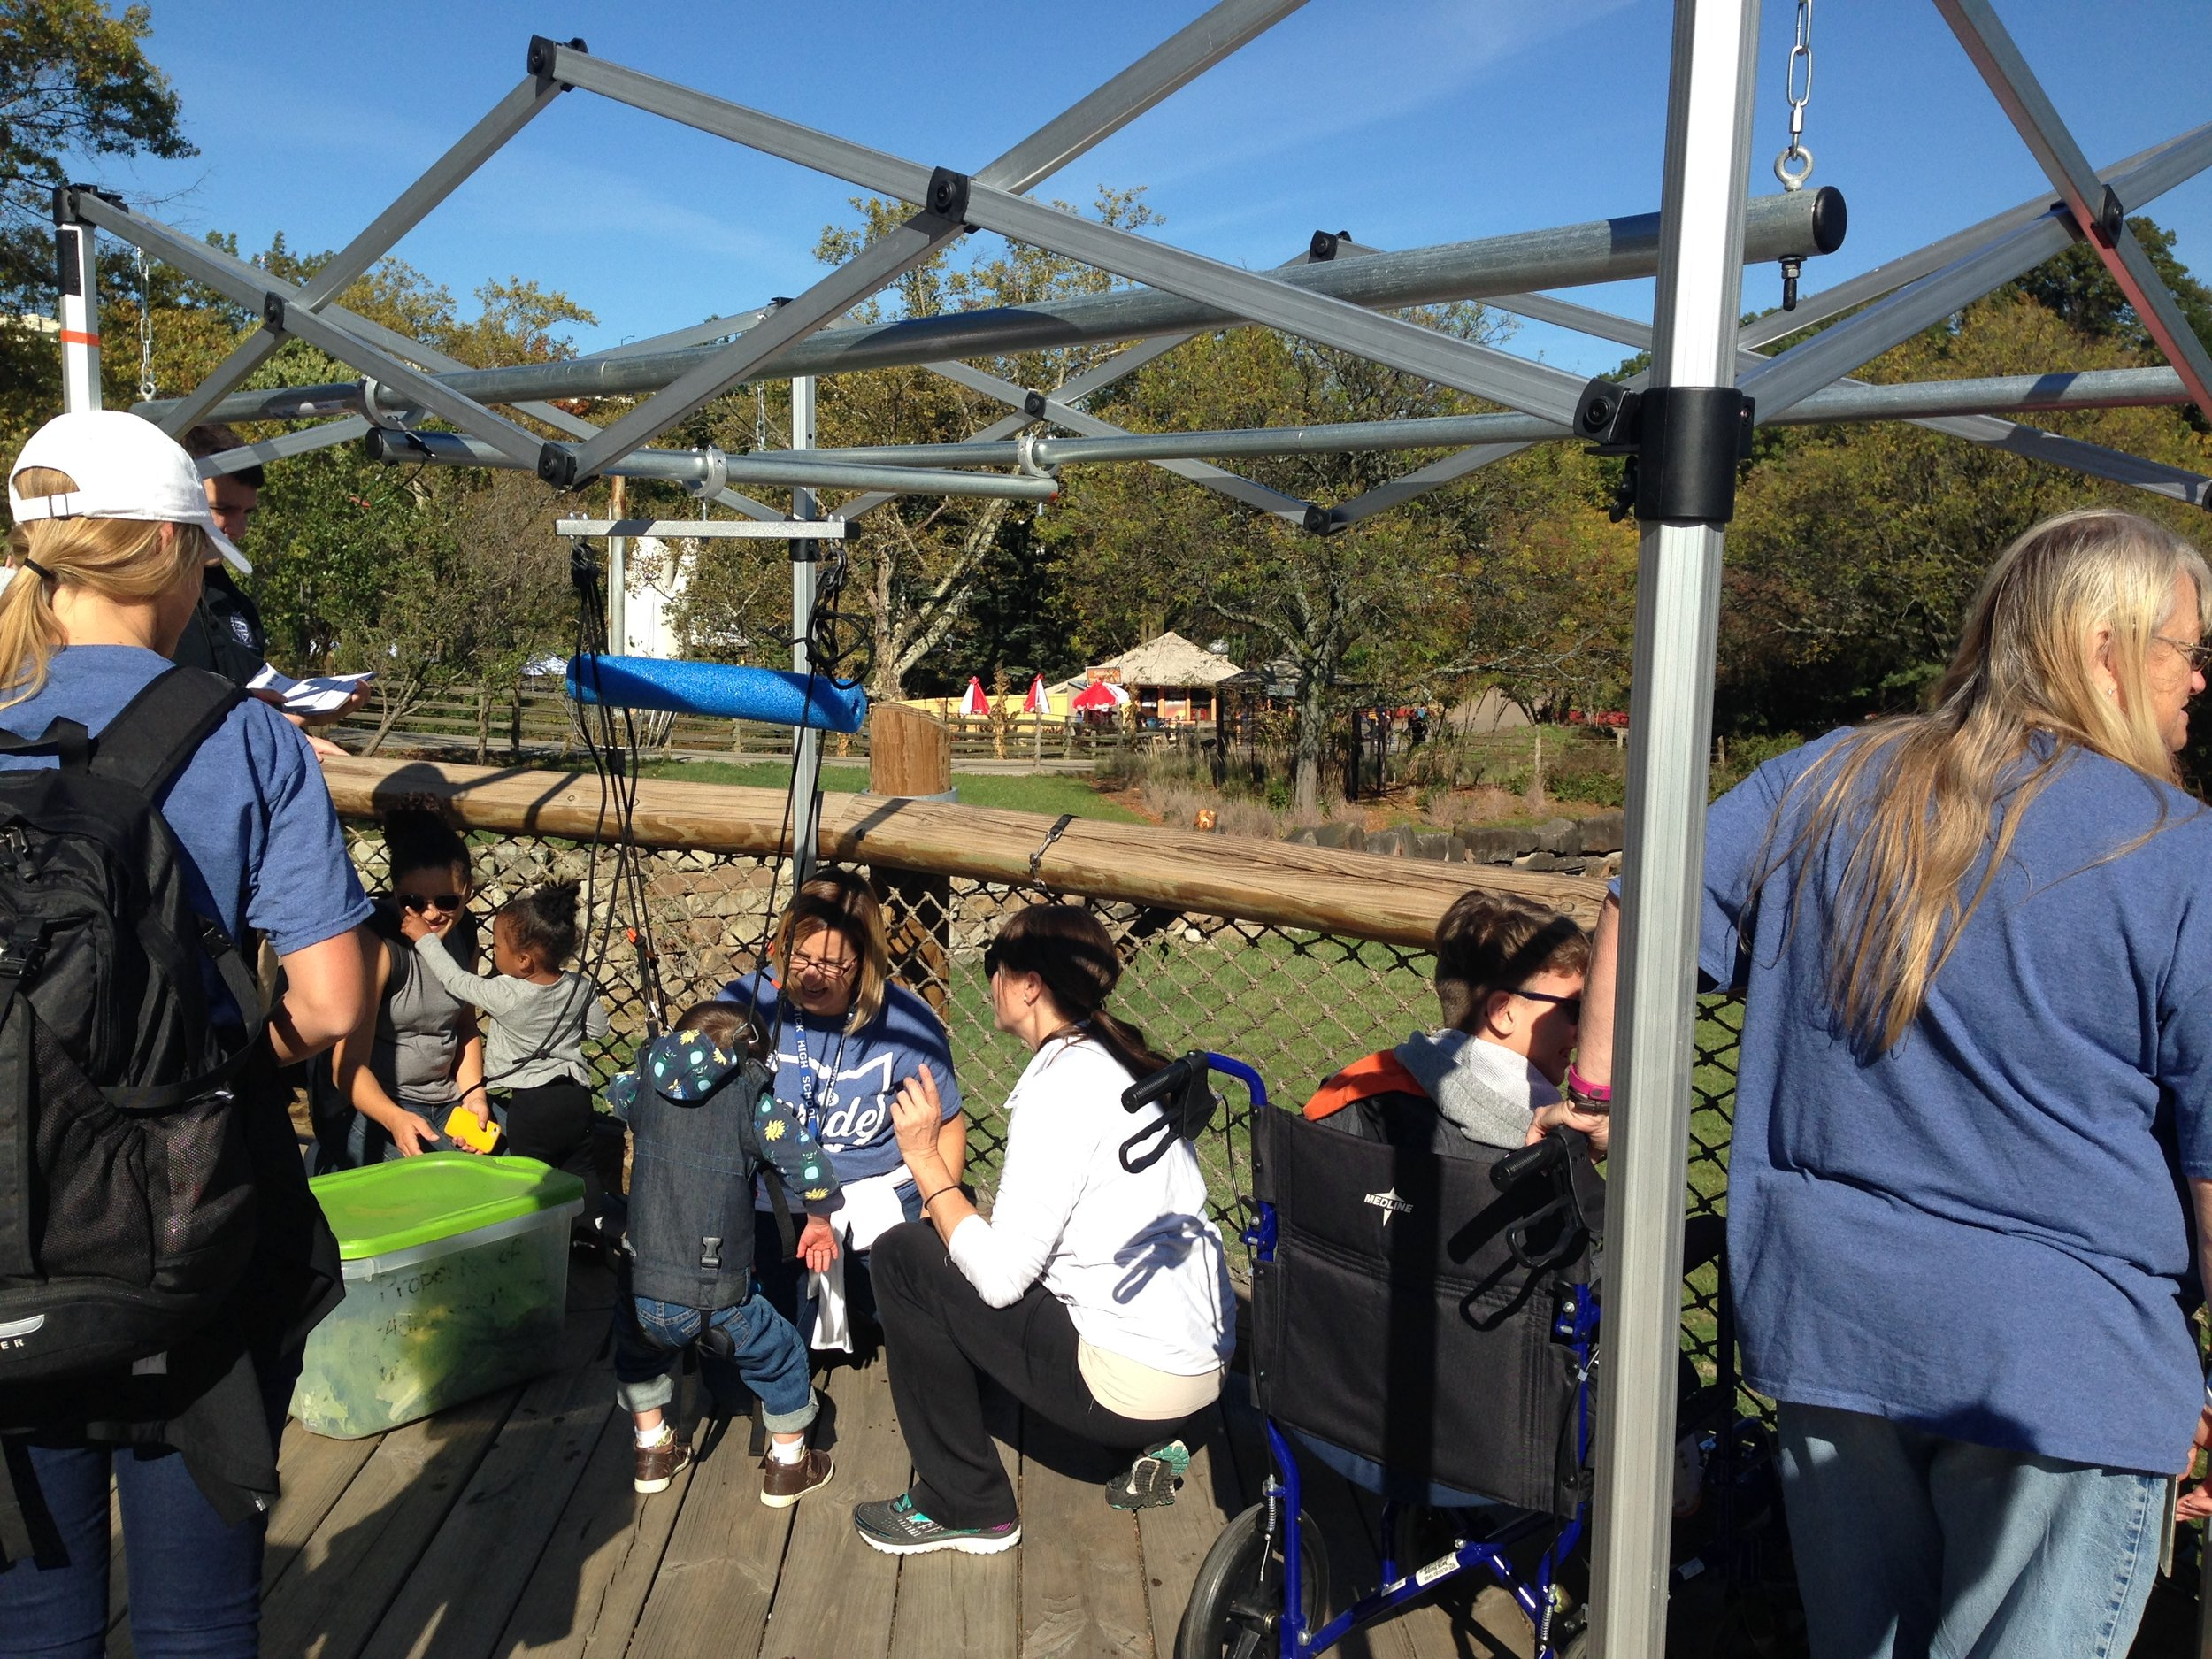 Our active volunteers and children attendees feeding Giraffes at the Cleveland Metroparks Zoo